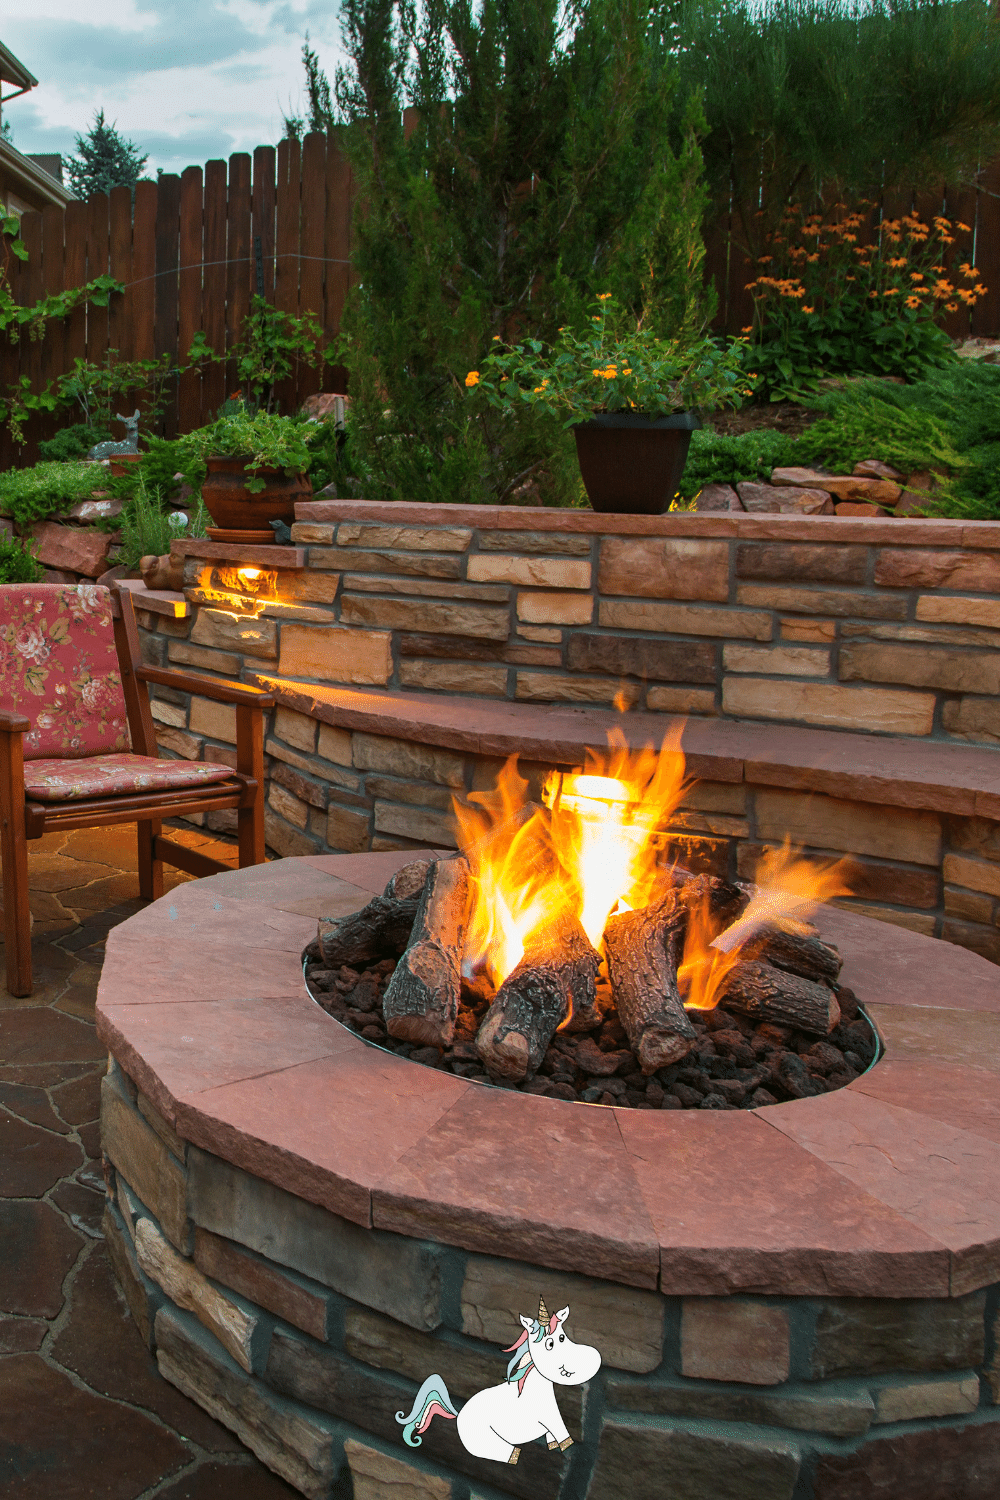 Fire pit with stone seating